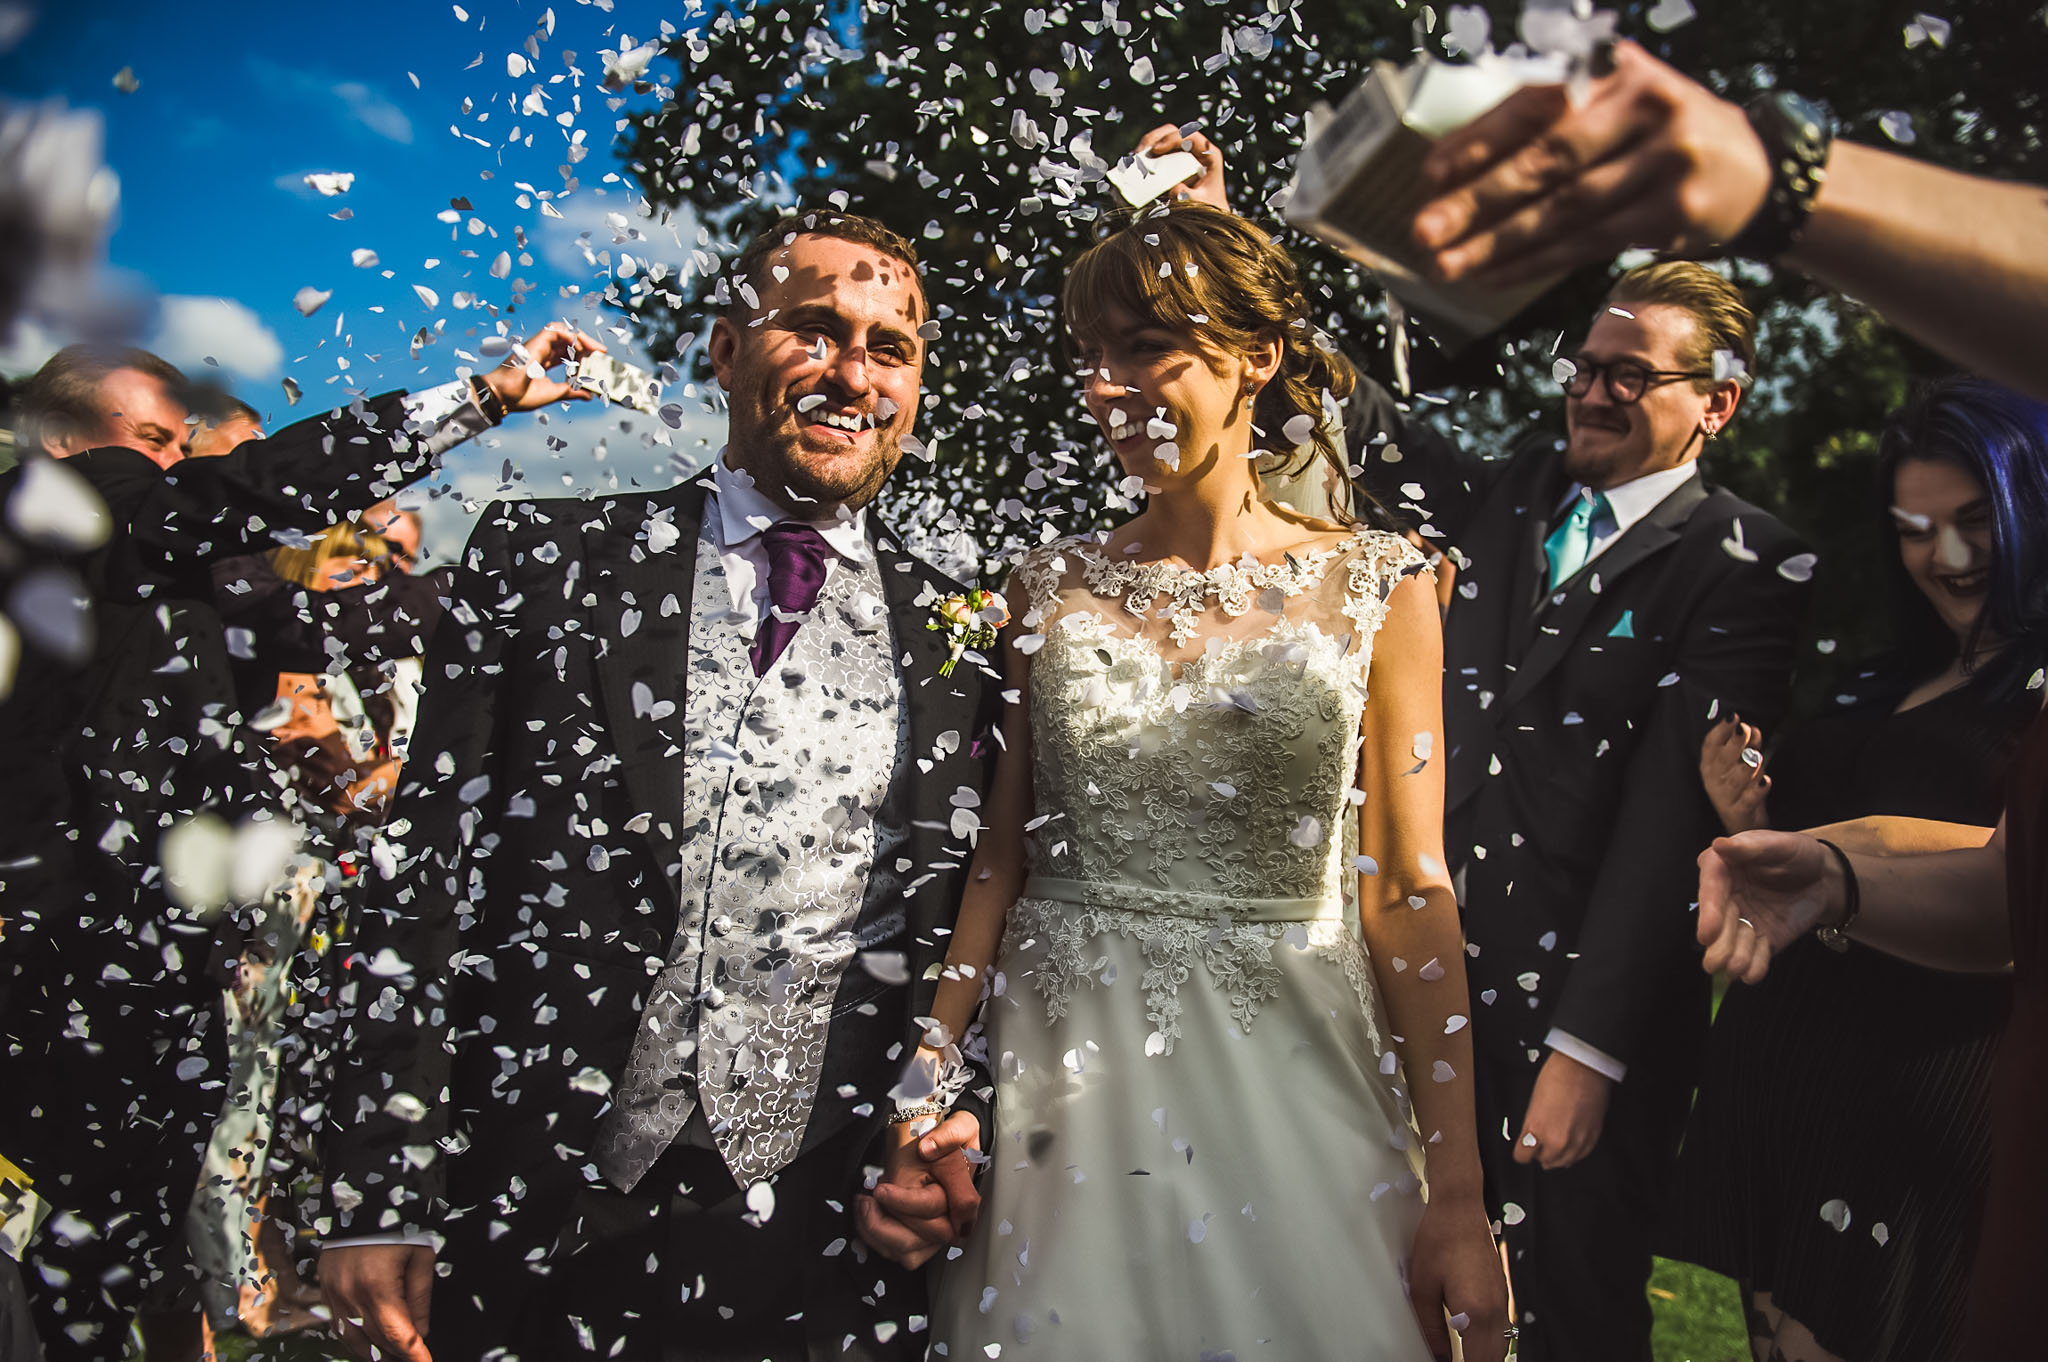 Bride and Groom are covered in confetti - wedding photography in Manchester